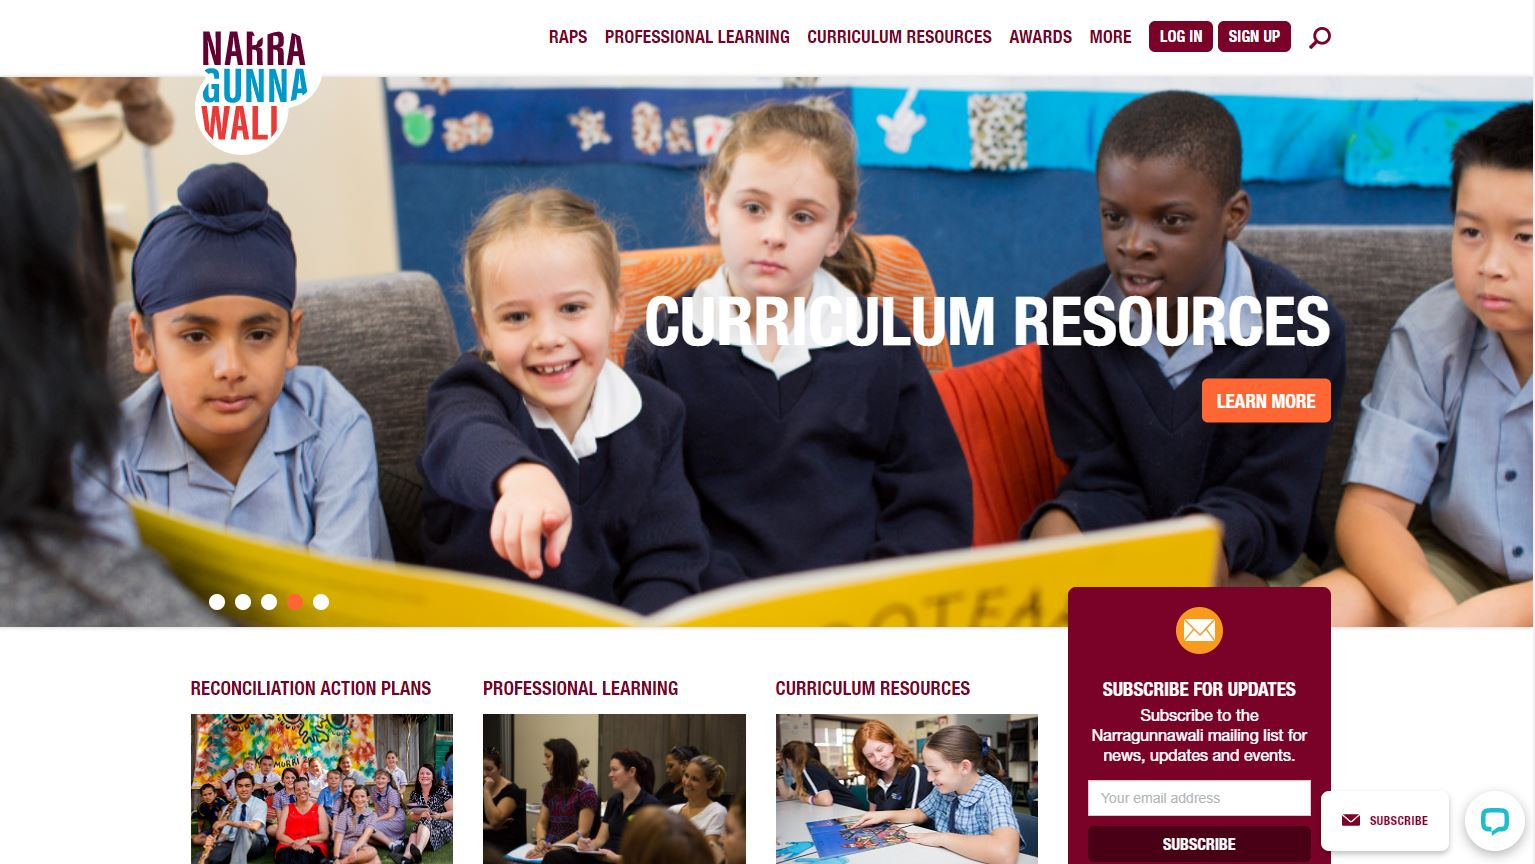 Home page of Narragunnawali website showing school children from a range of cultural backgrounds